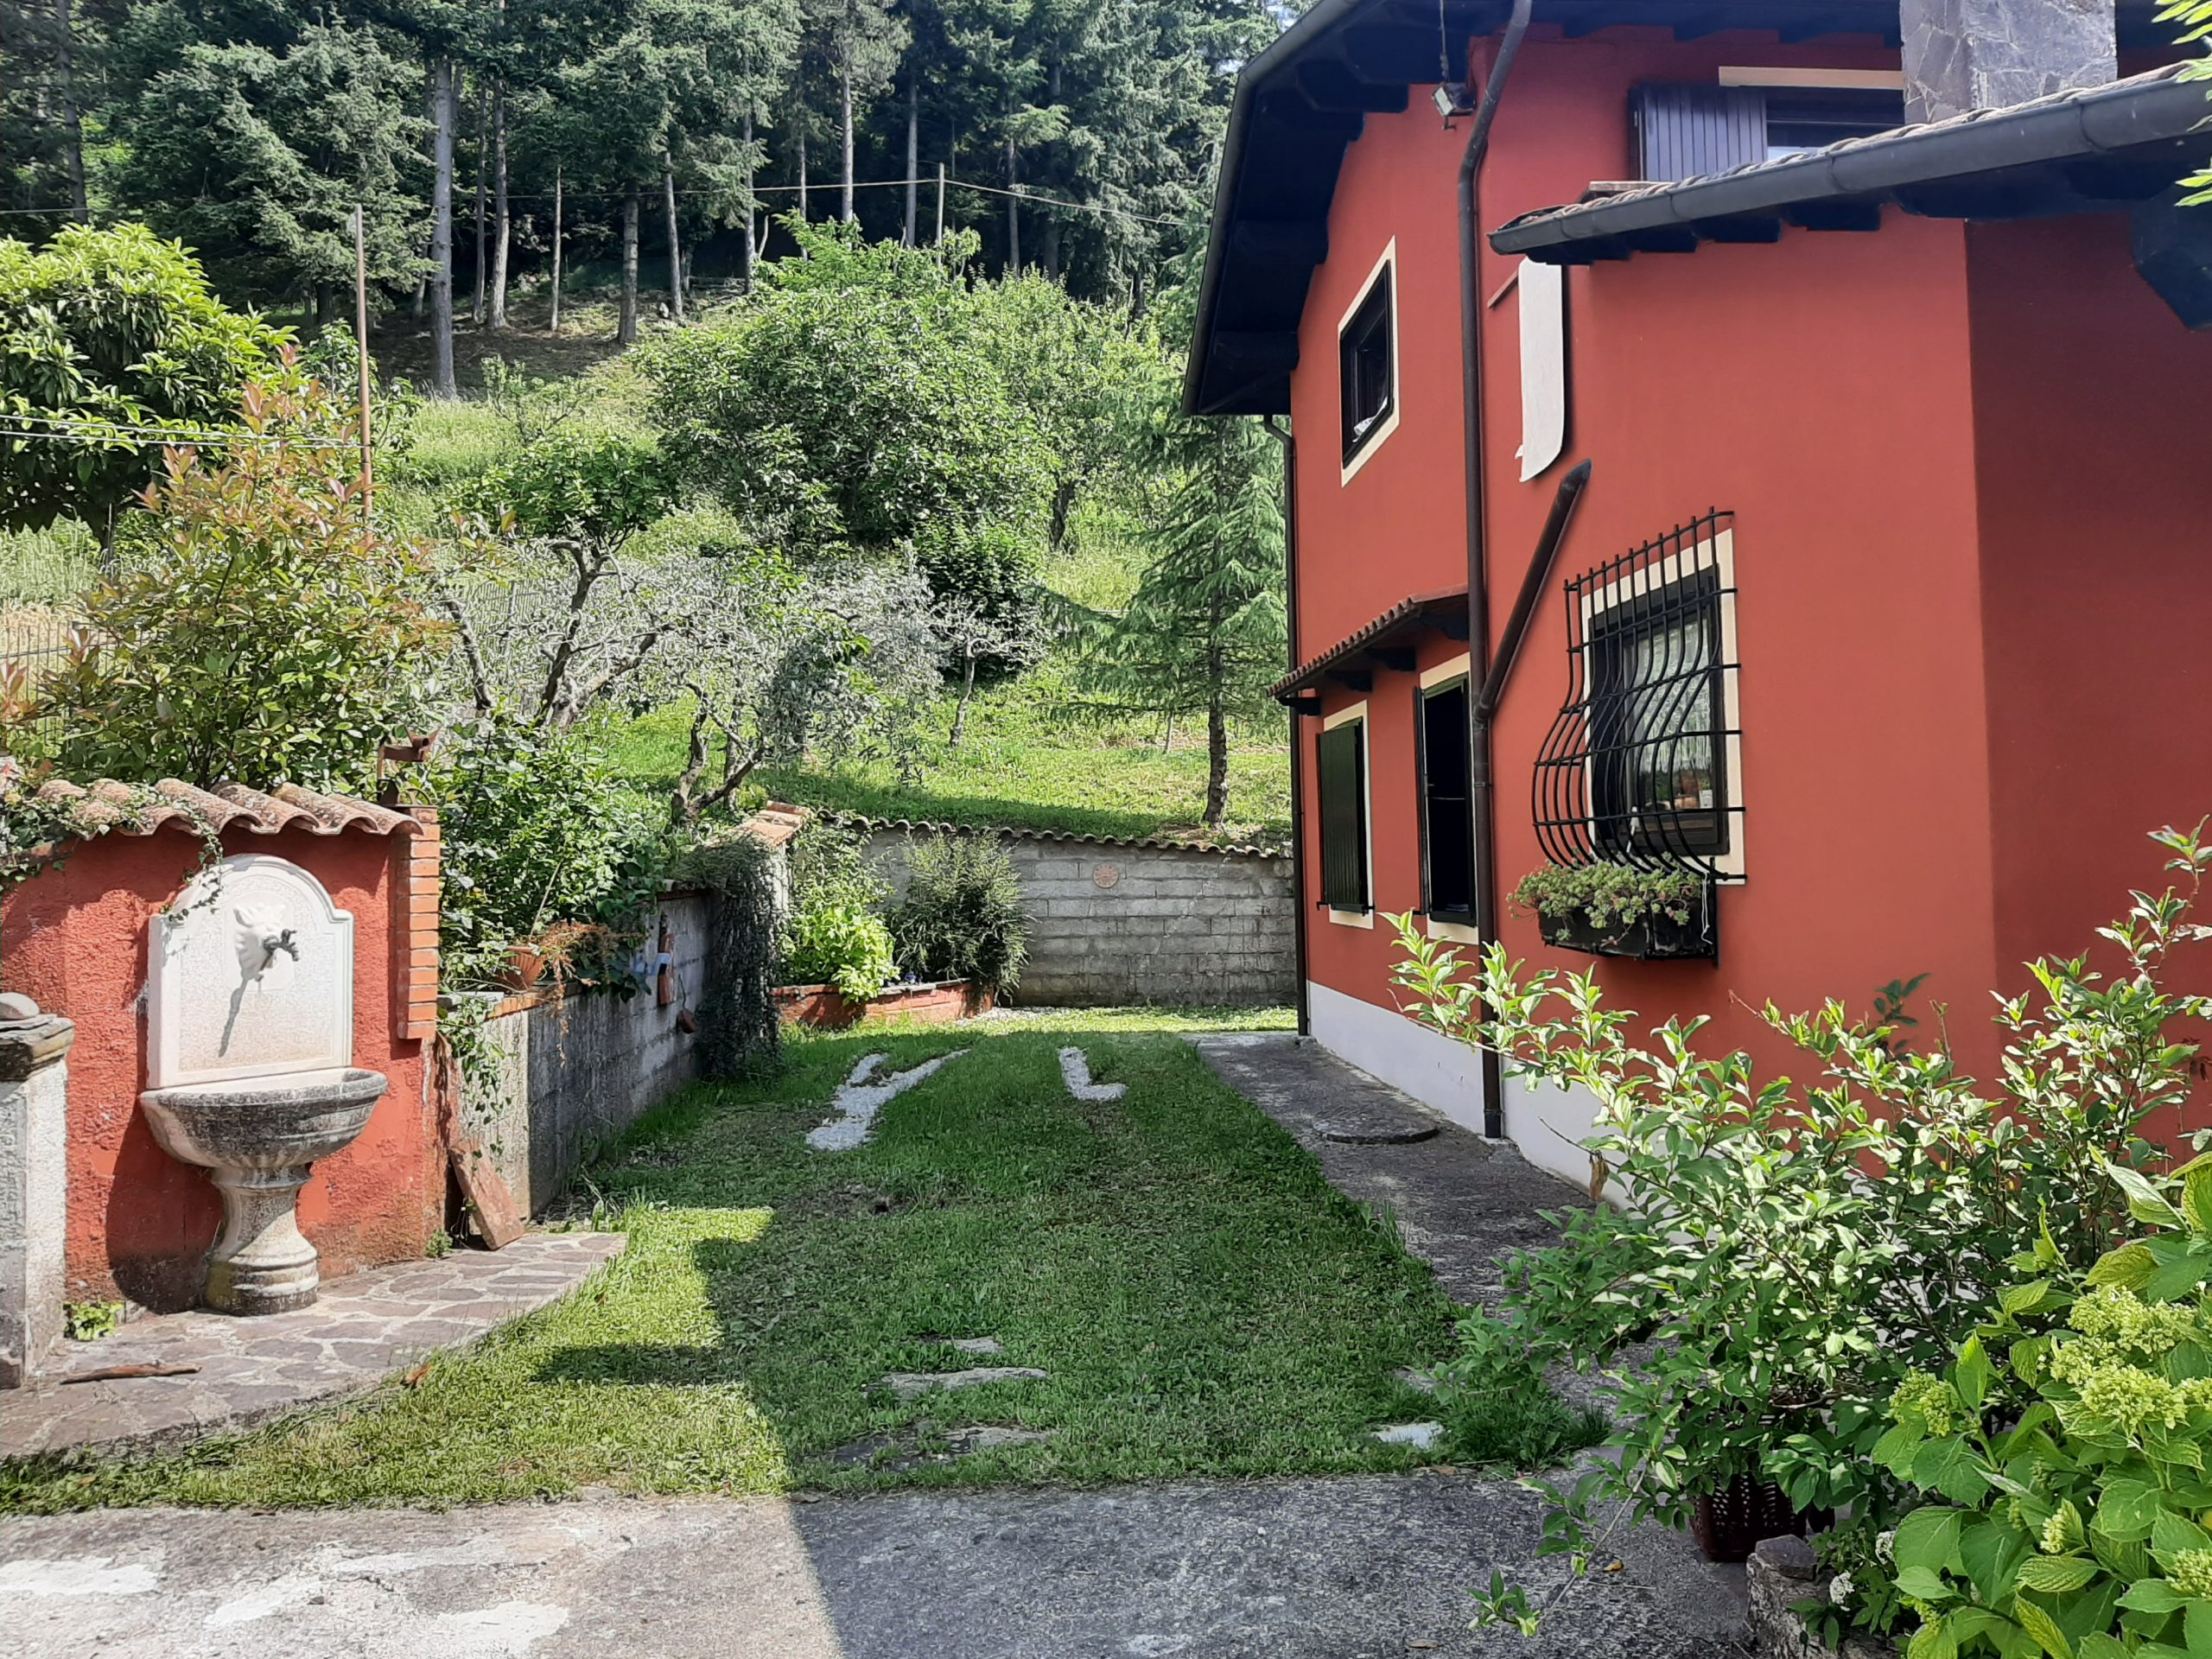 Independent Villa with Pool in Lunigiana, A dream in Tuscany … Possible ….ref. 2419